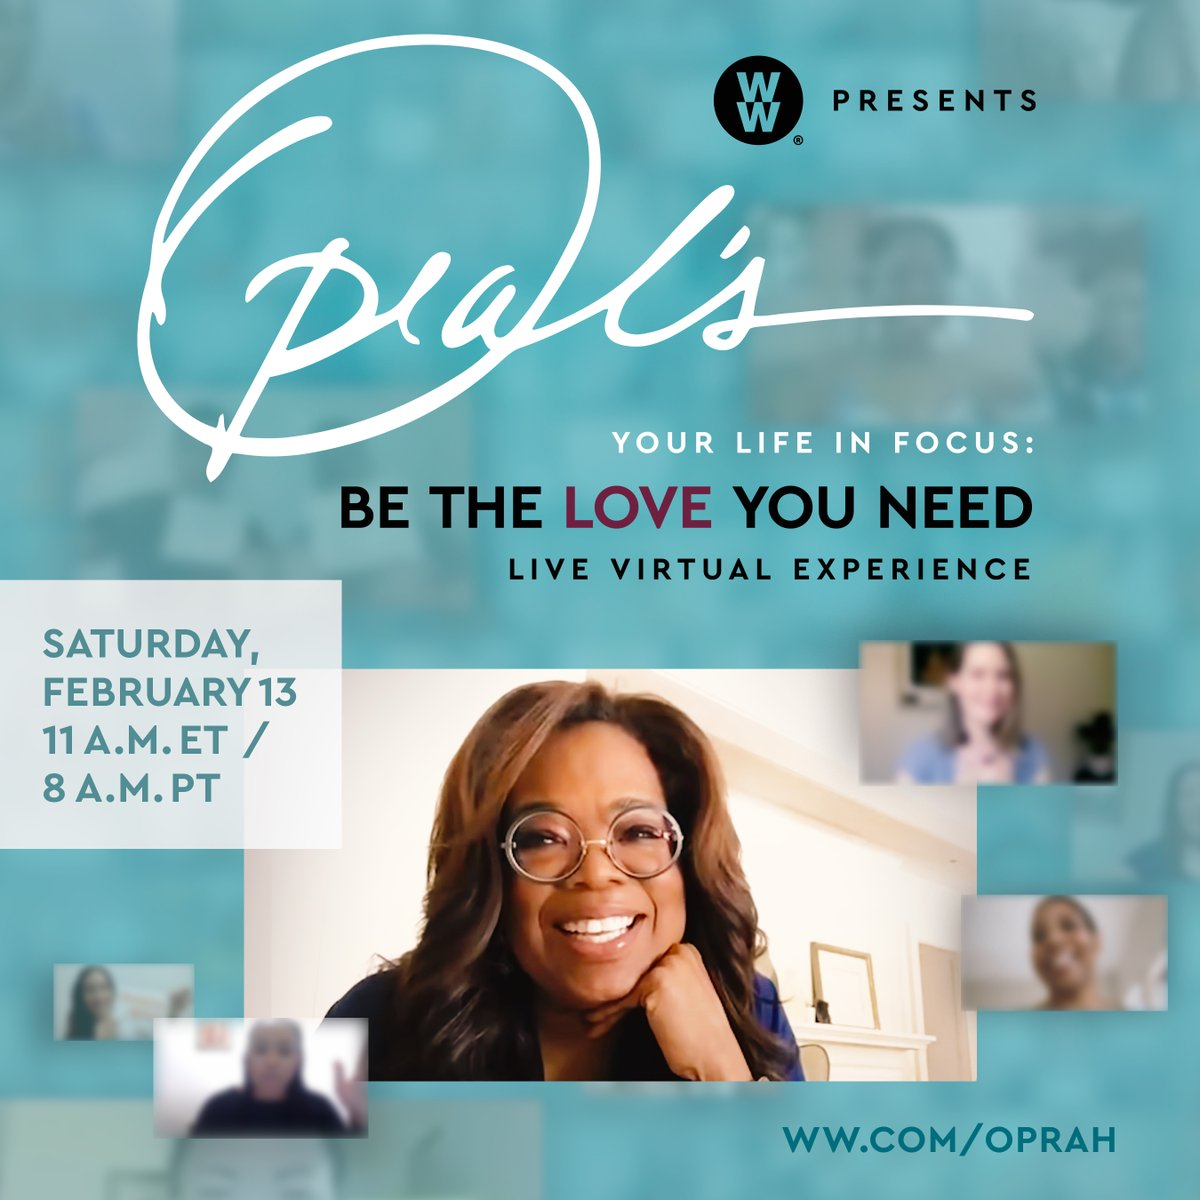 """It's happening! @Oprah is live with the """"Oprah's Your Life in Focus: Be the Love You Need – Live Virtual Experience!"""" We've got our workbooks and are ready to work on creating a stronger, healthier and connected  life!"""